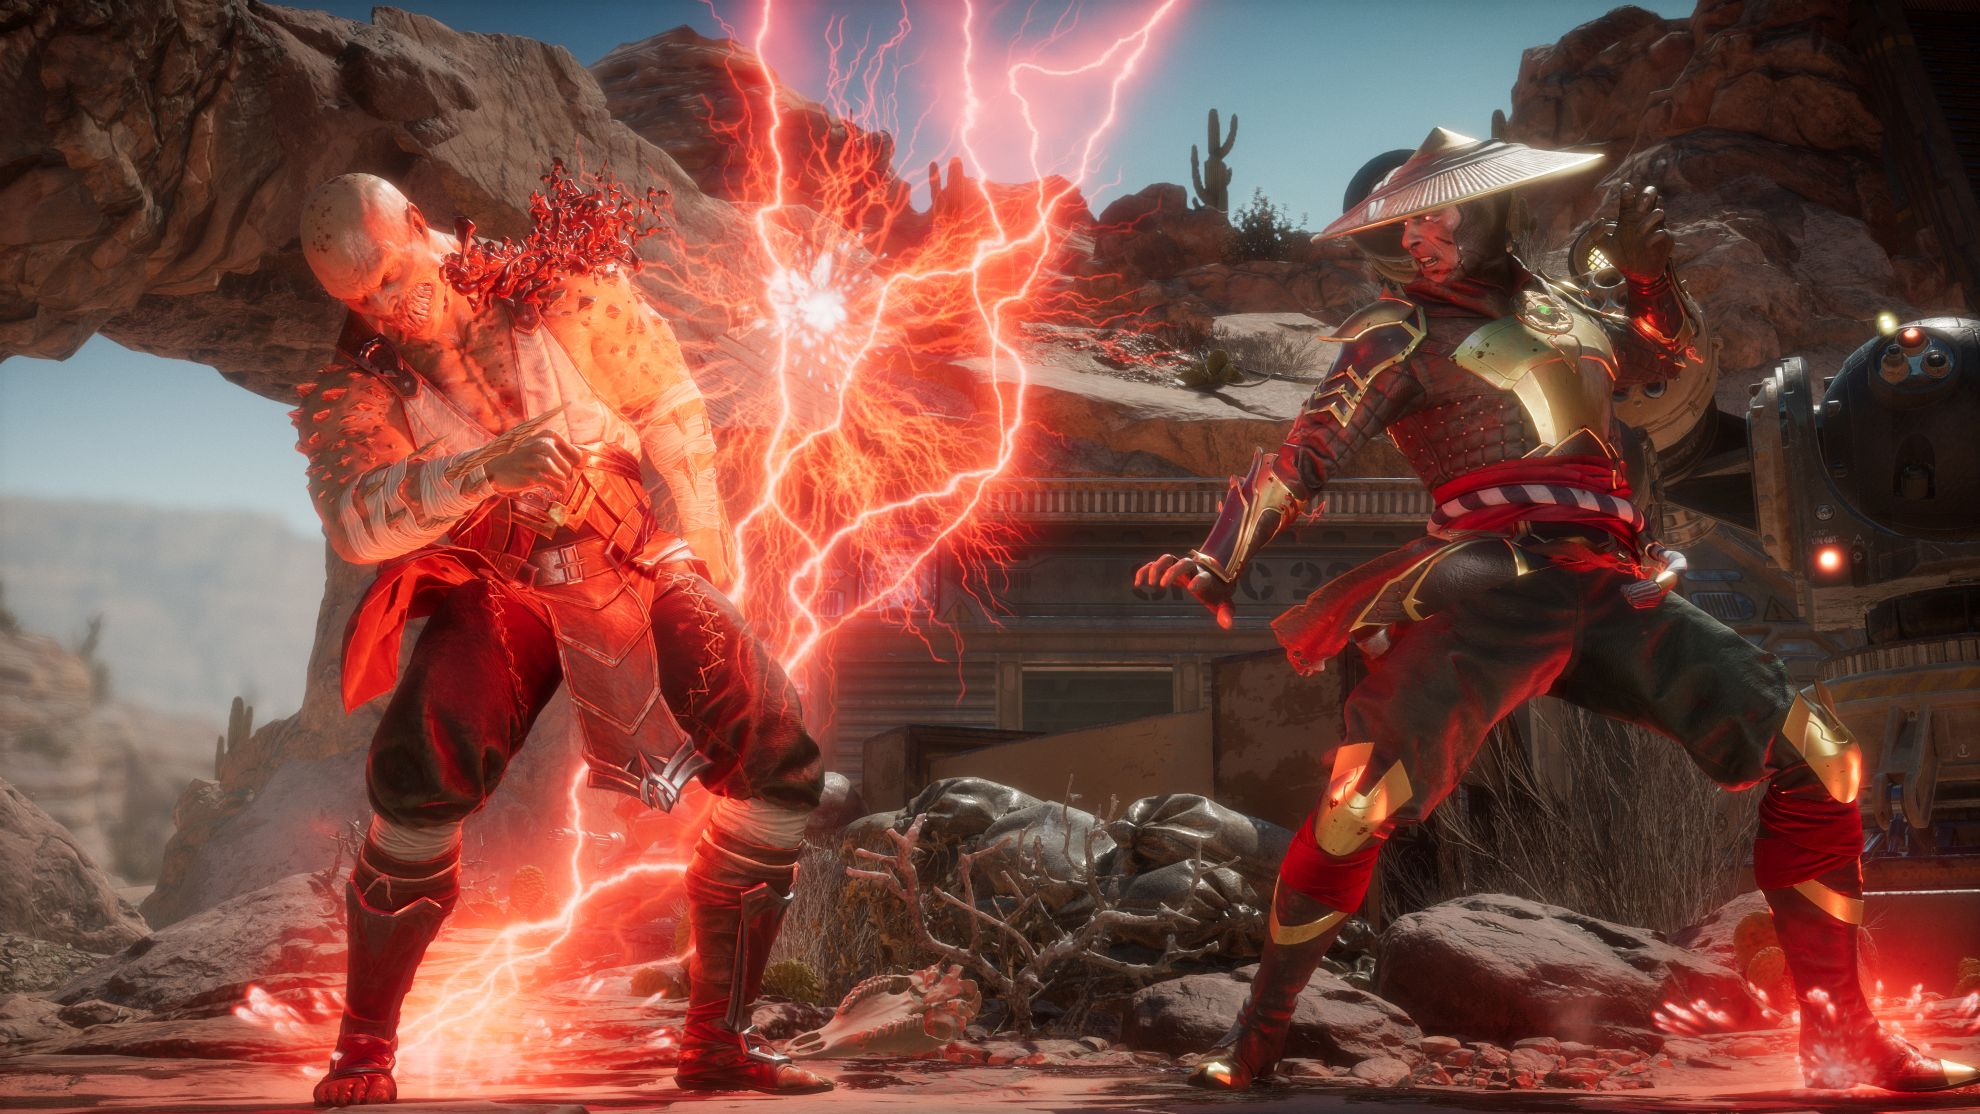 Mortal Kombat 11: All The New Story, Gameplay, And